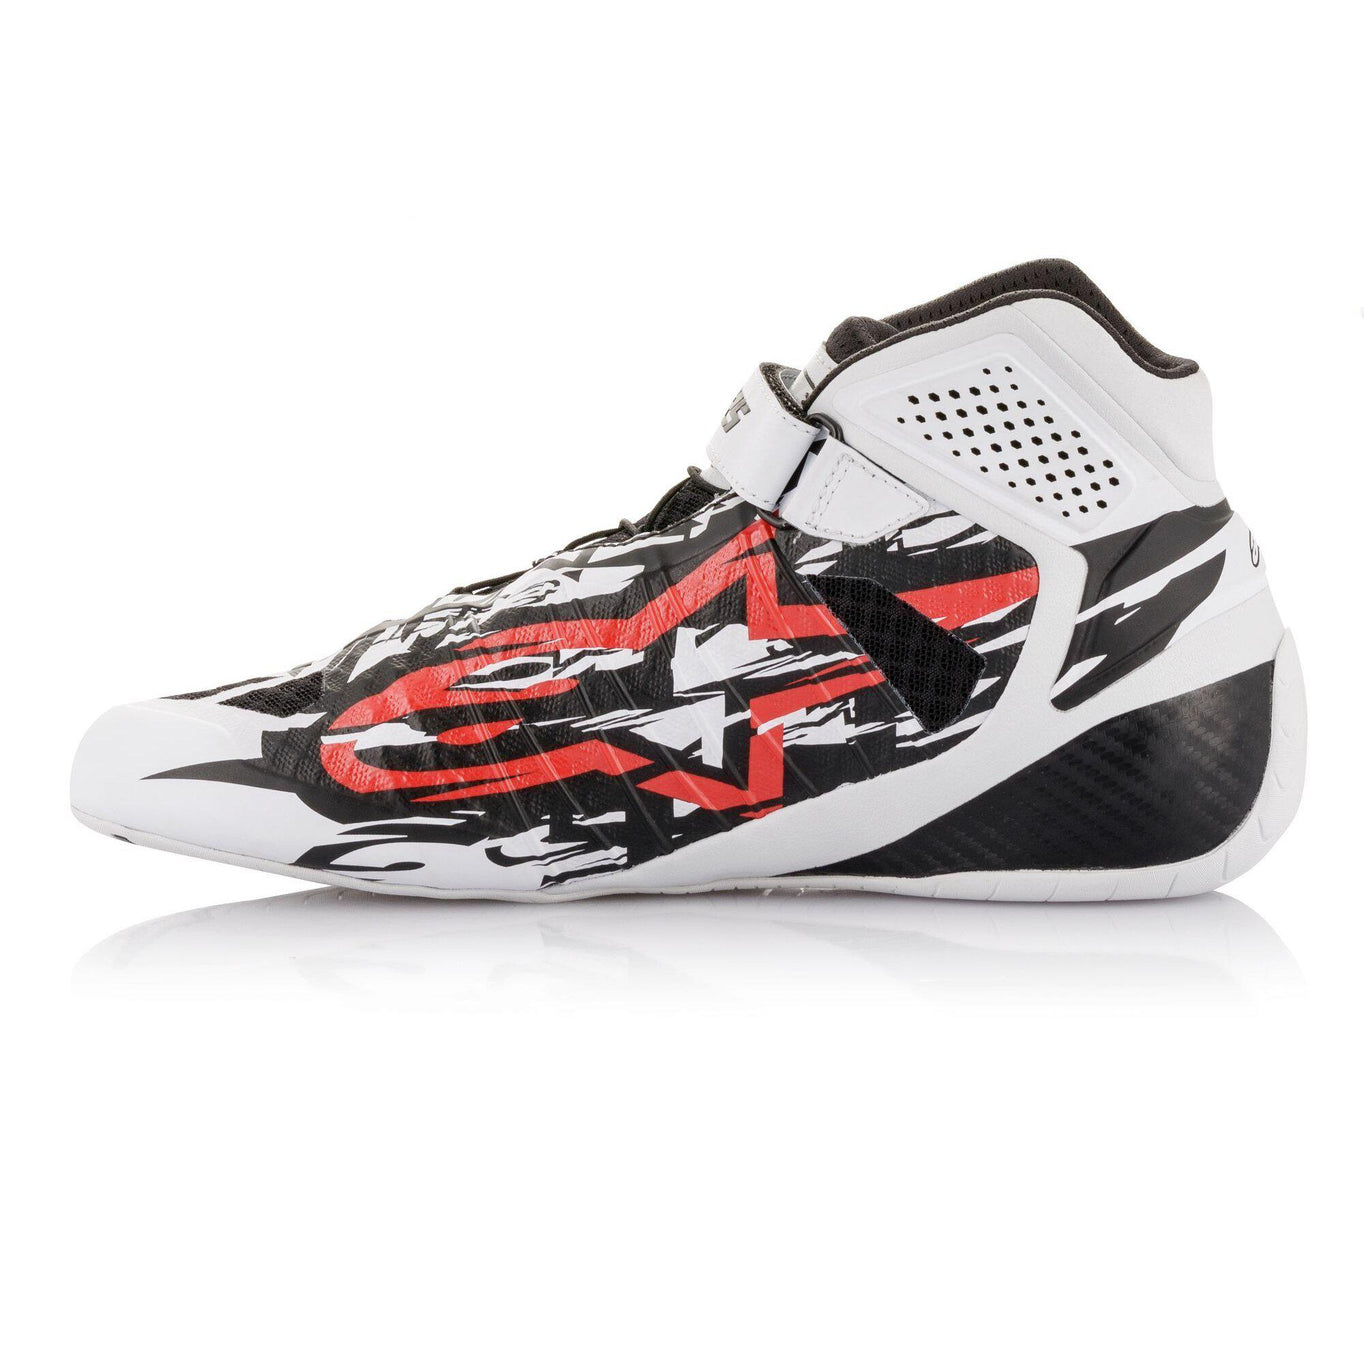 Limited Edition SUPERSONIC Tech-1 KZ Shoe